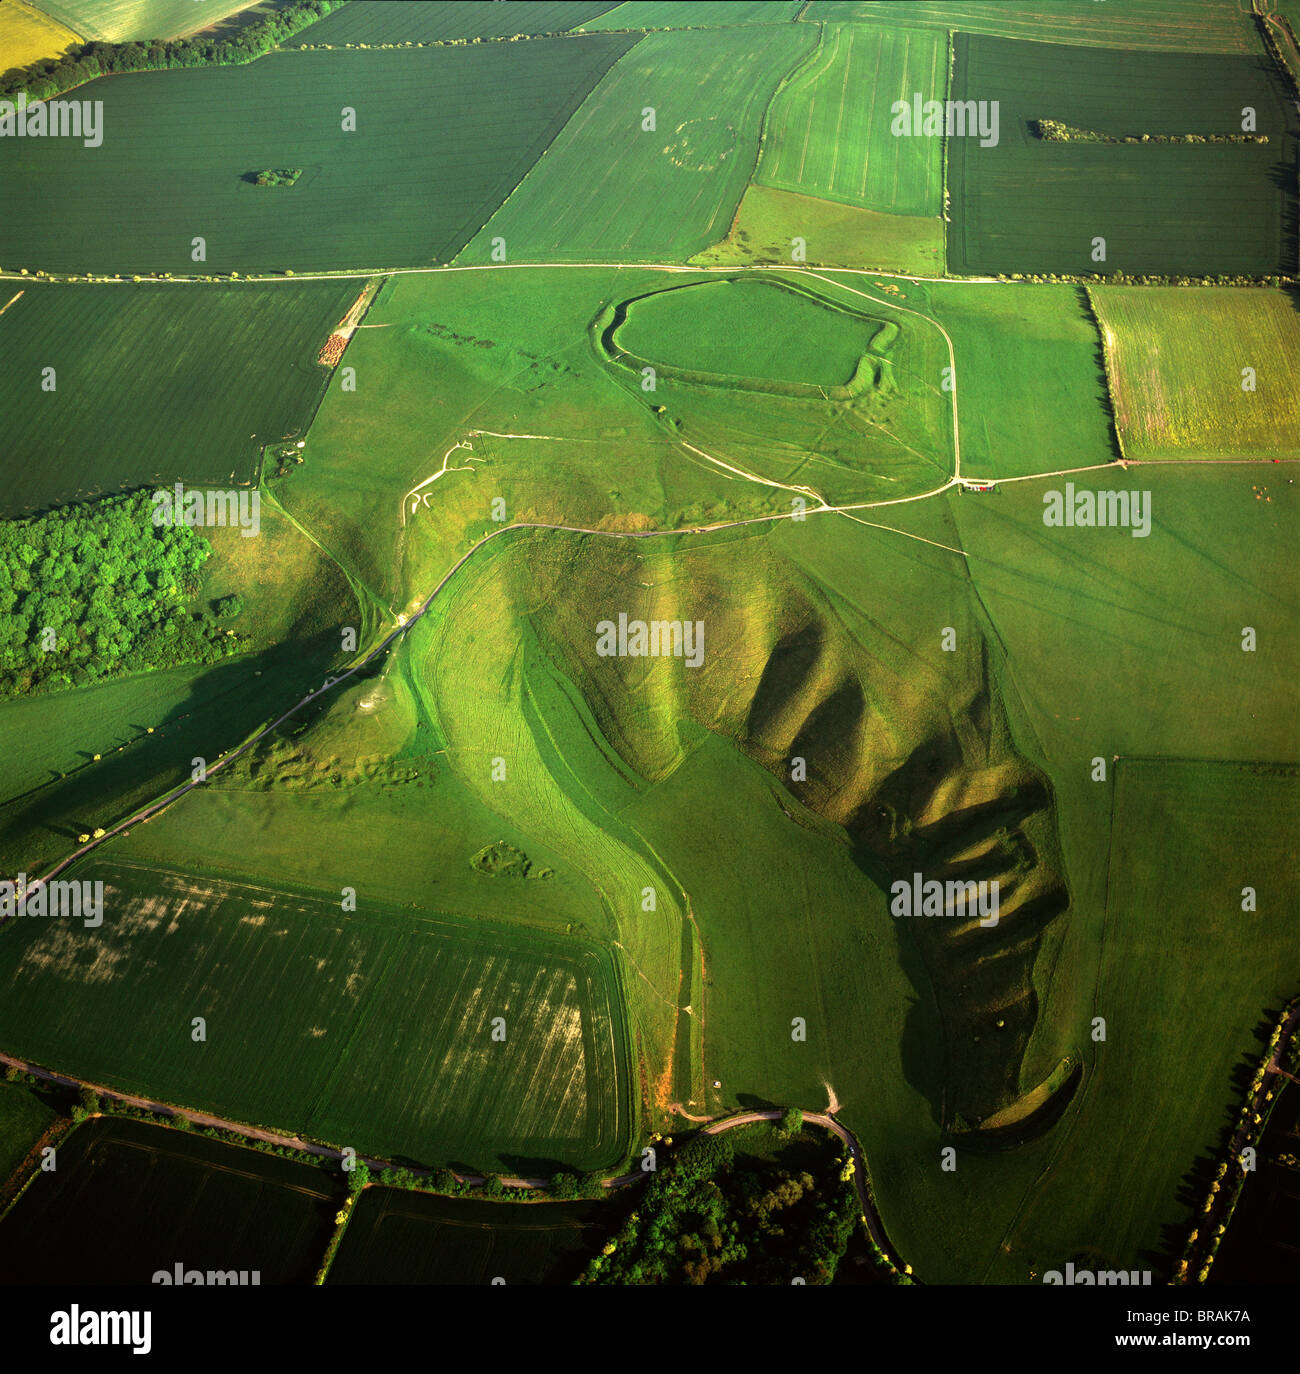 Aerial Image Of The Uffington White Horse With Uffington Castle Hill Stock Photo Alamy